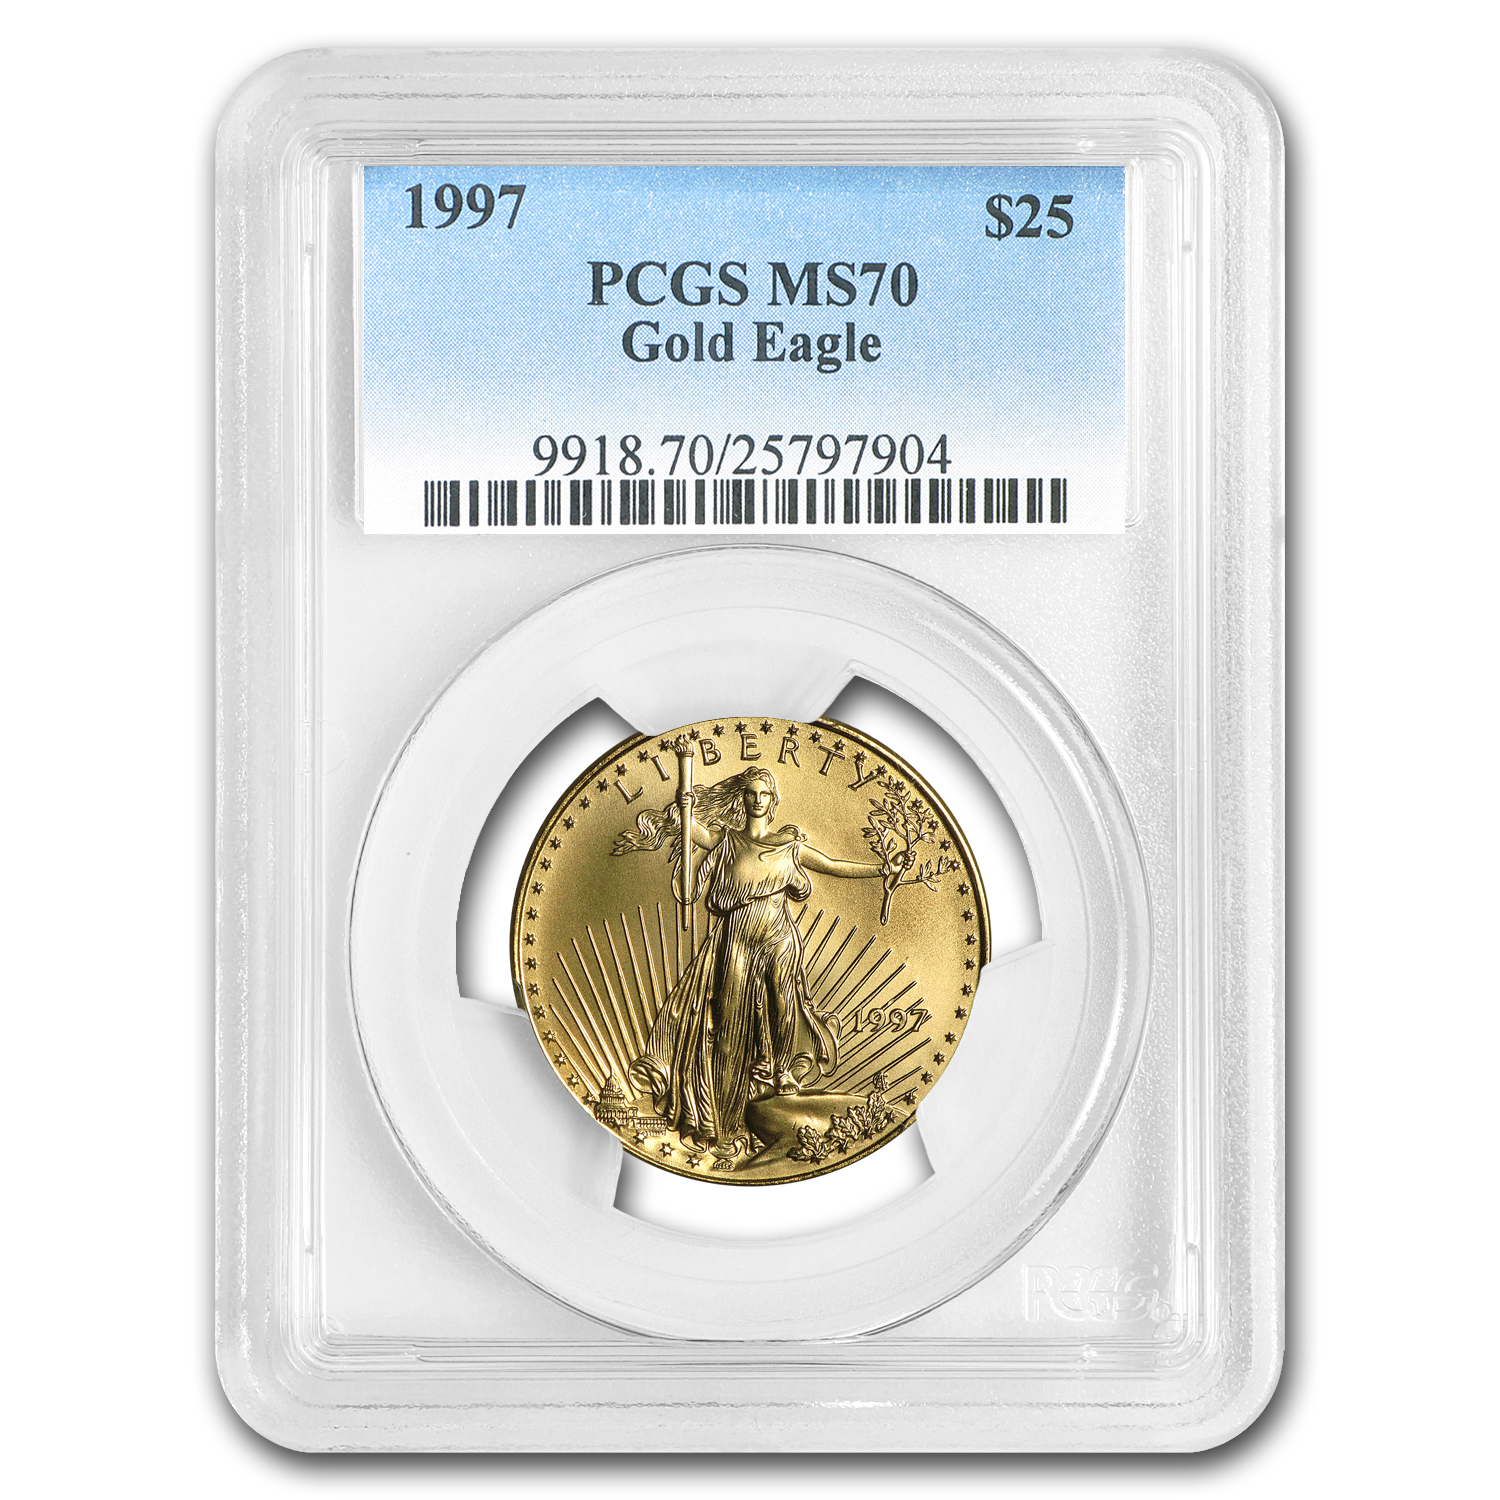 1997 1/2 oz Gold American Eagle MS-70 PCGS (Registry Set)